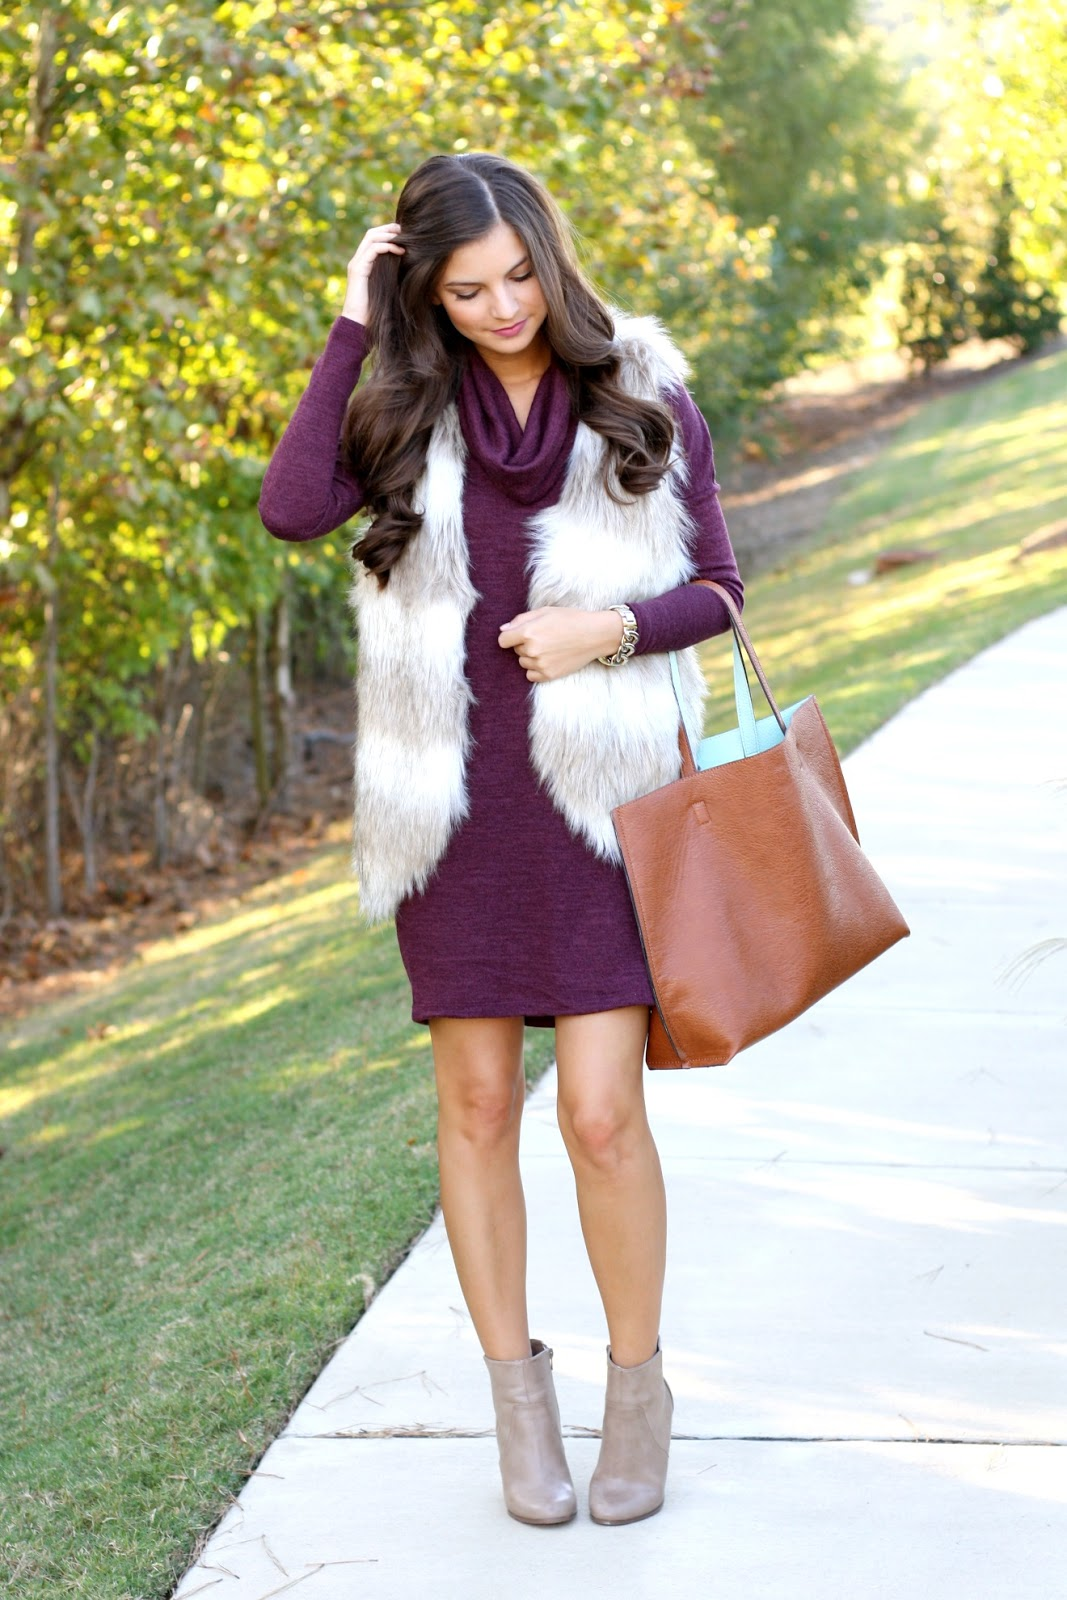 Chasing Abigail Lee : 3 Ways to Wear a Fur Vest This Fall